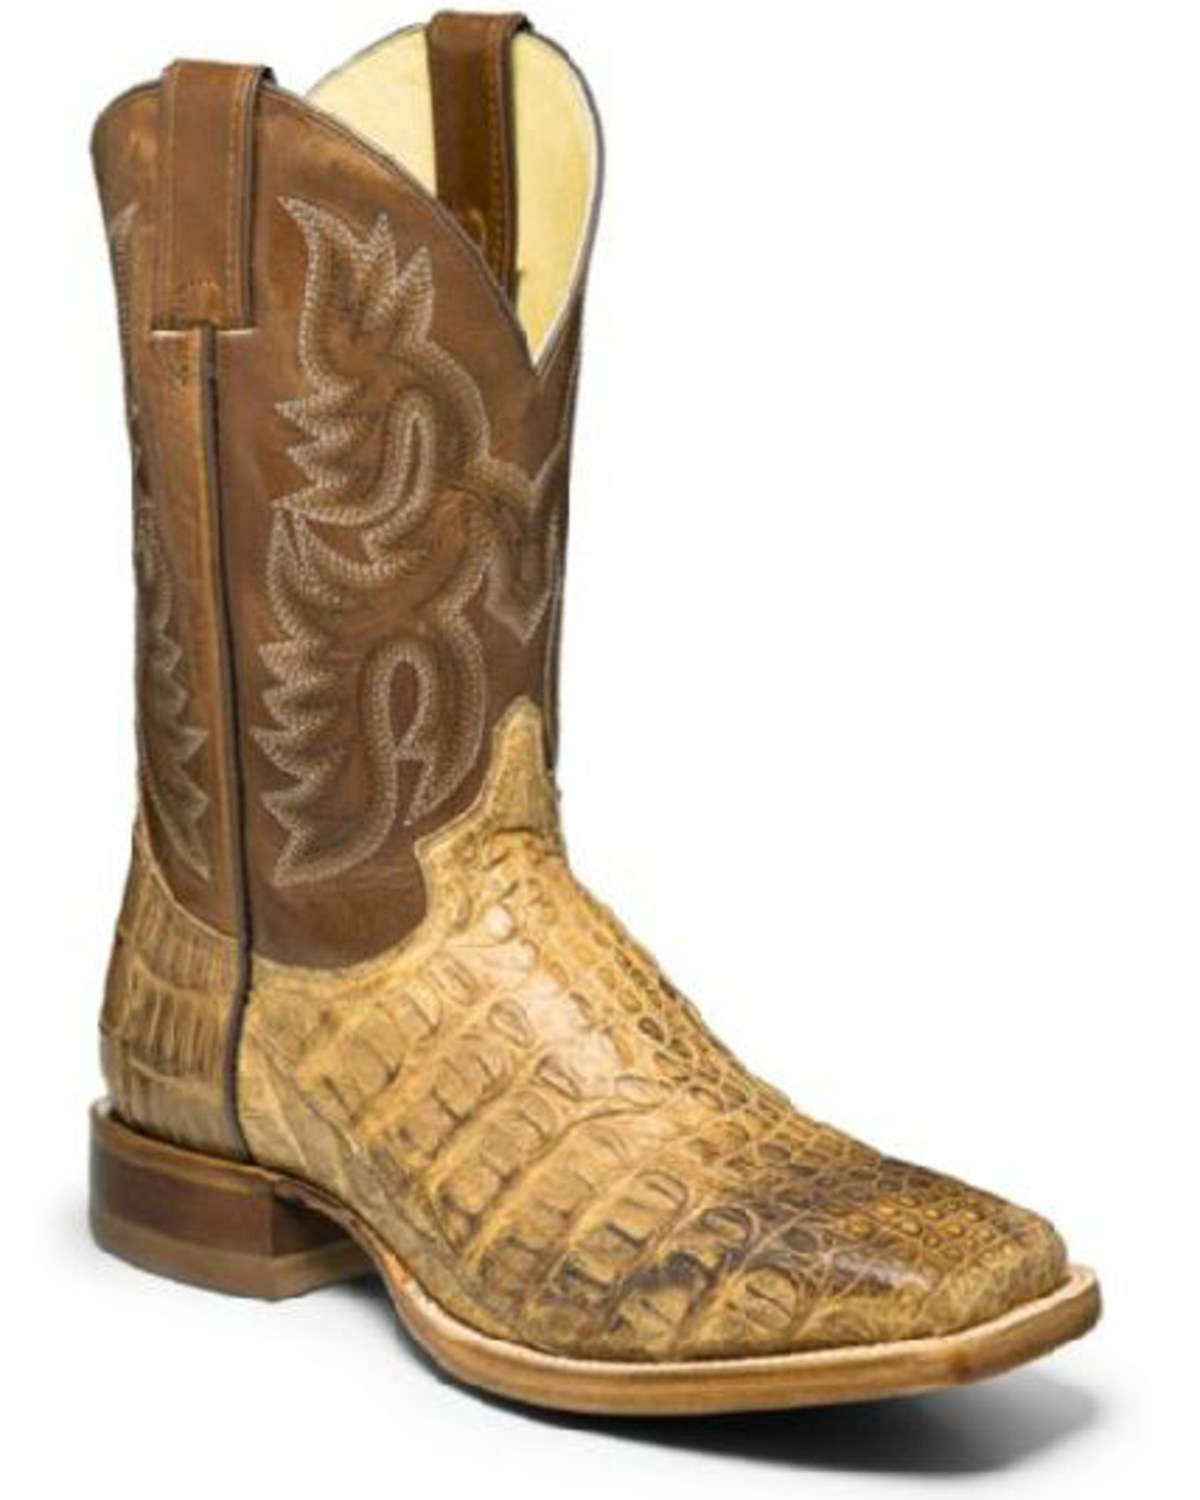 634734cf5d2 Justin Men's Desert Caiman Leather Western Boots - Wide Square Toe